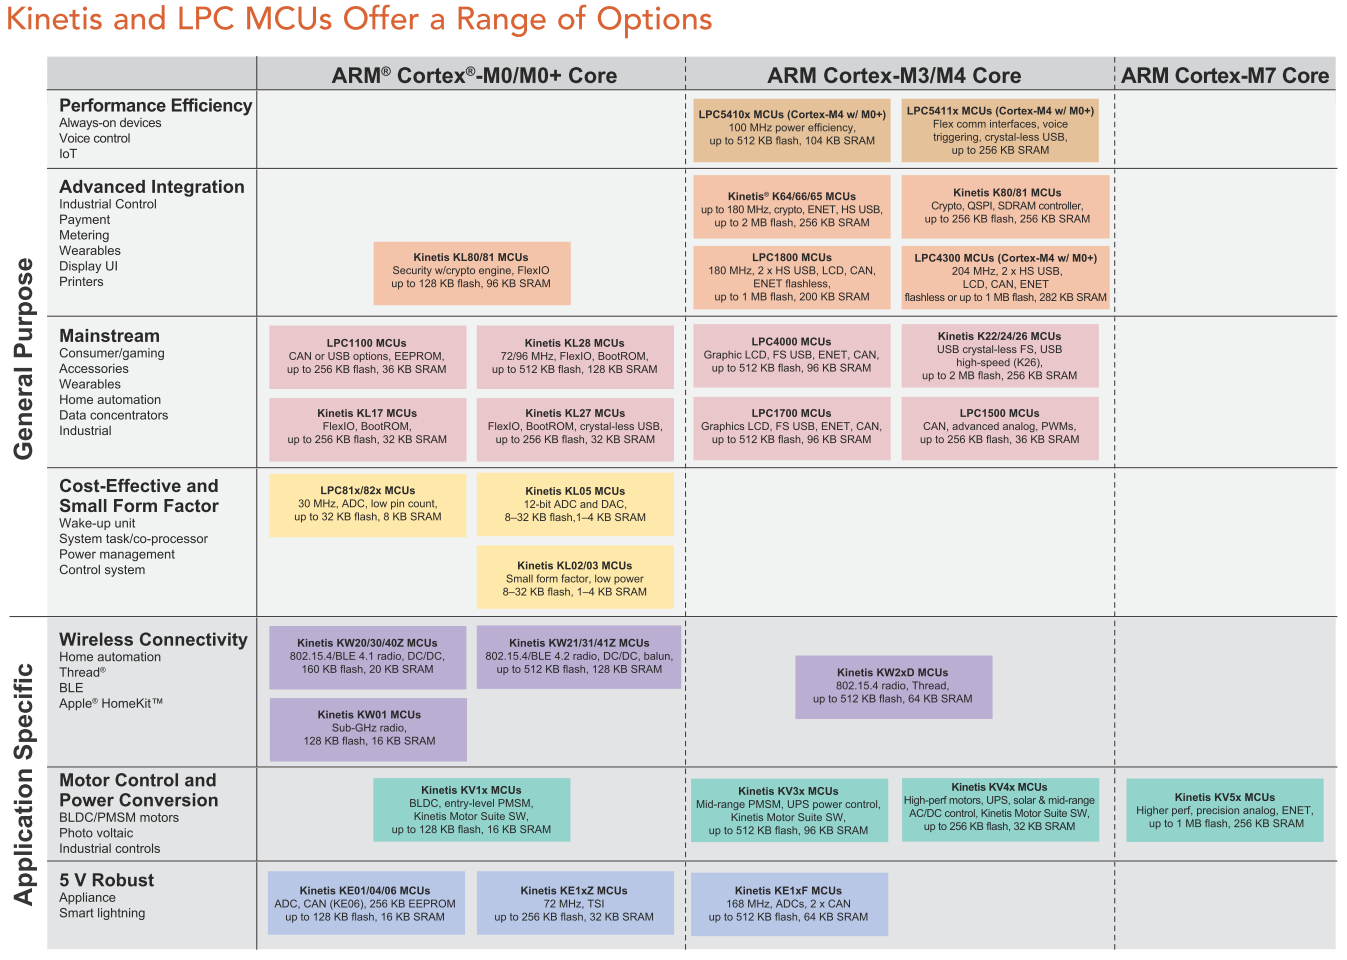 Kinetis and LPC MCUs Offer a Range of Options (Source: 2016)